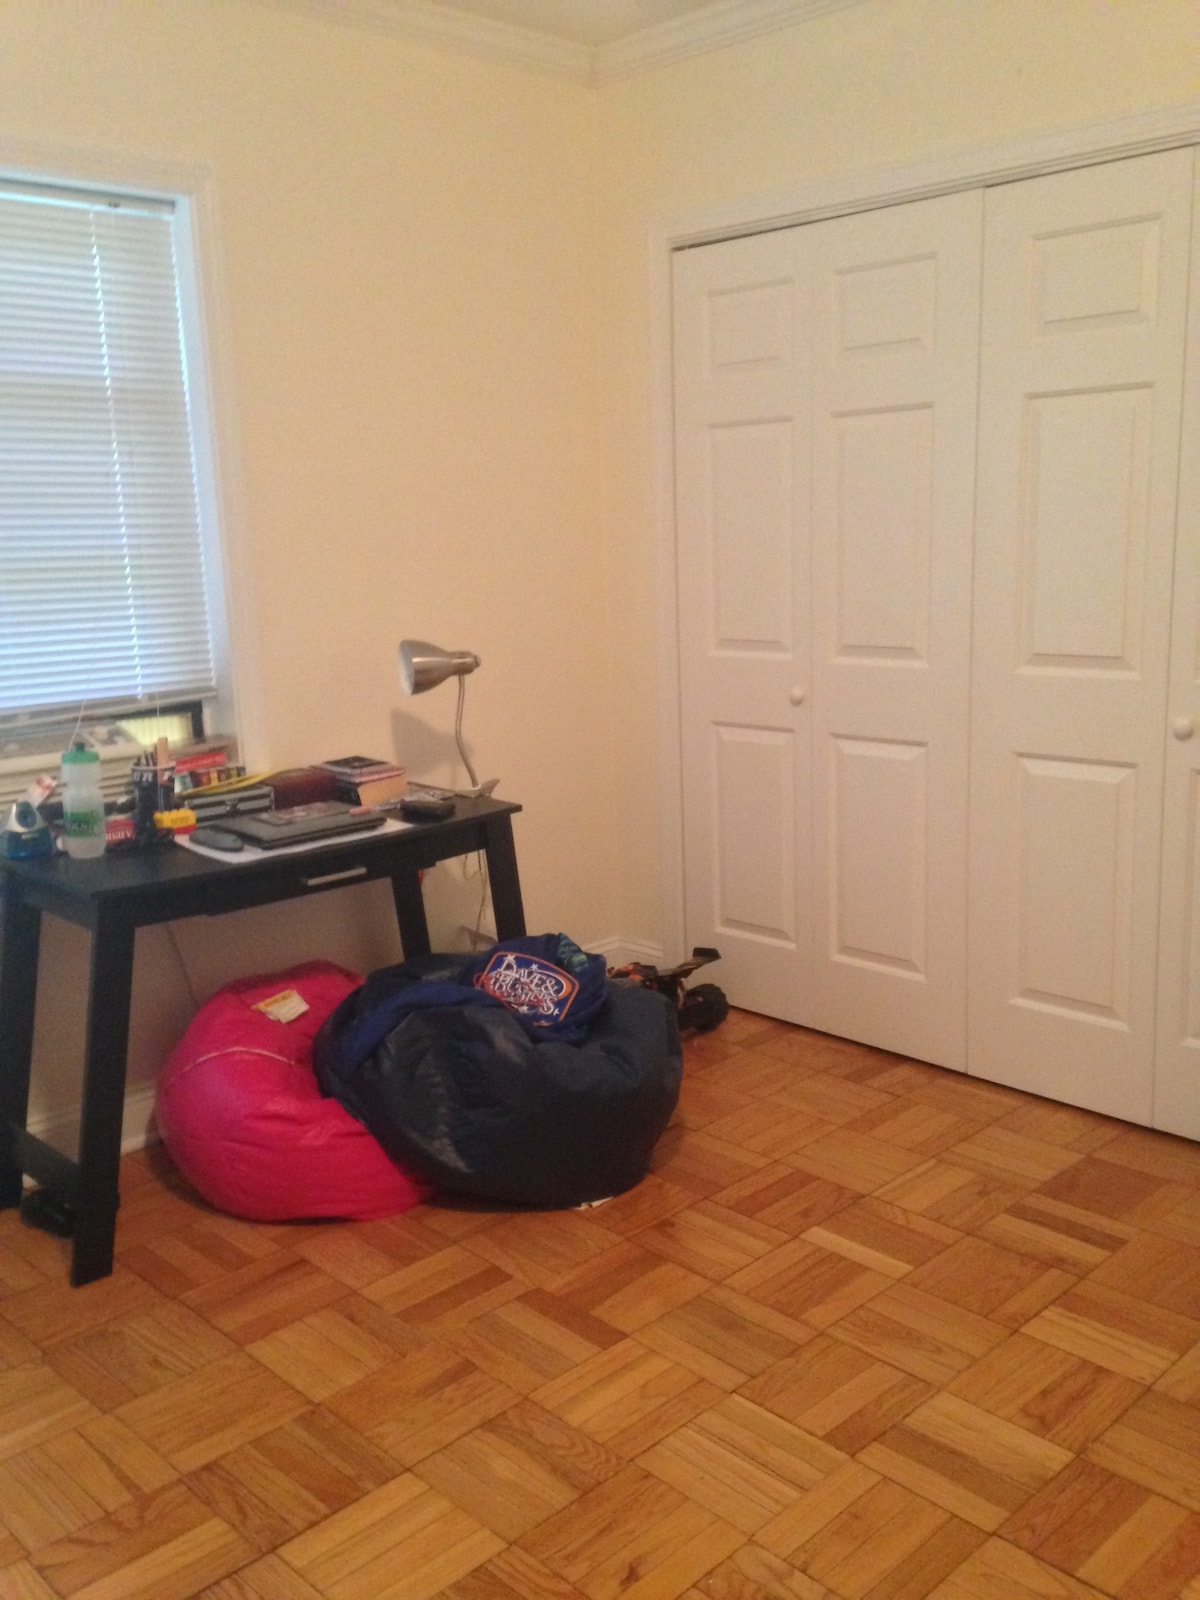 Twin bed in a clean room